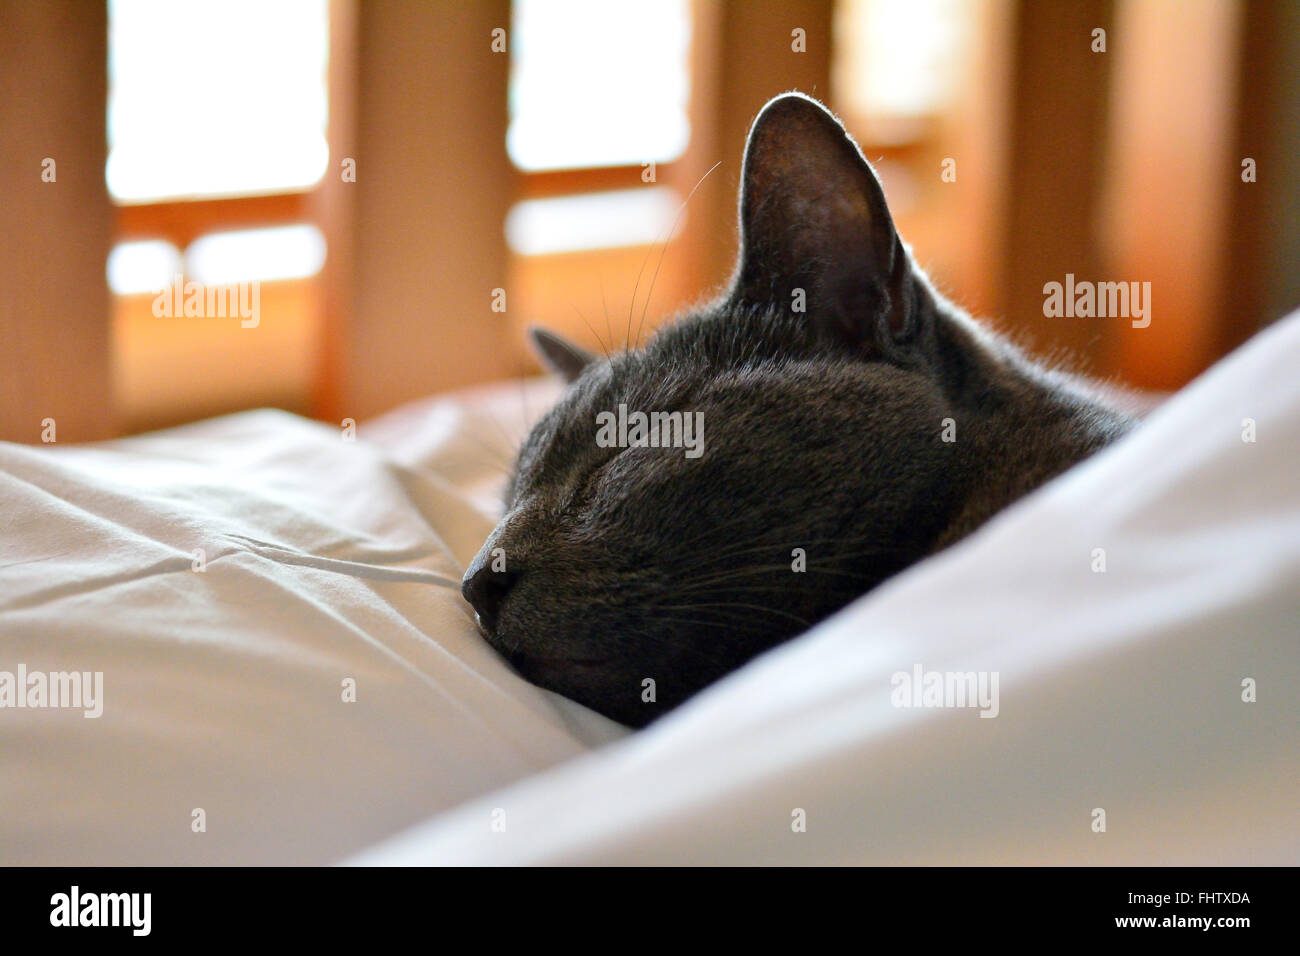 Cat sleeping in bed with head on pillow under duvet covering its body - Stock Image